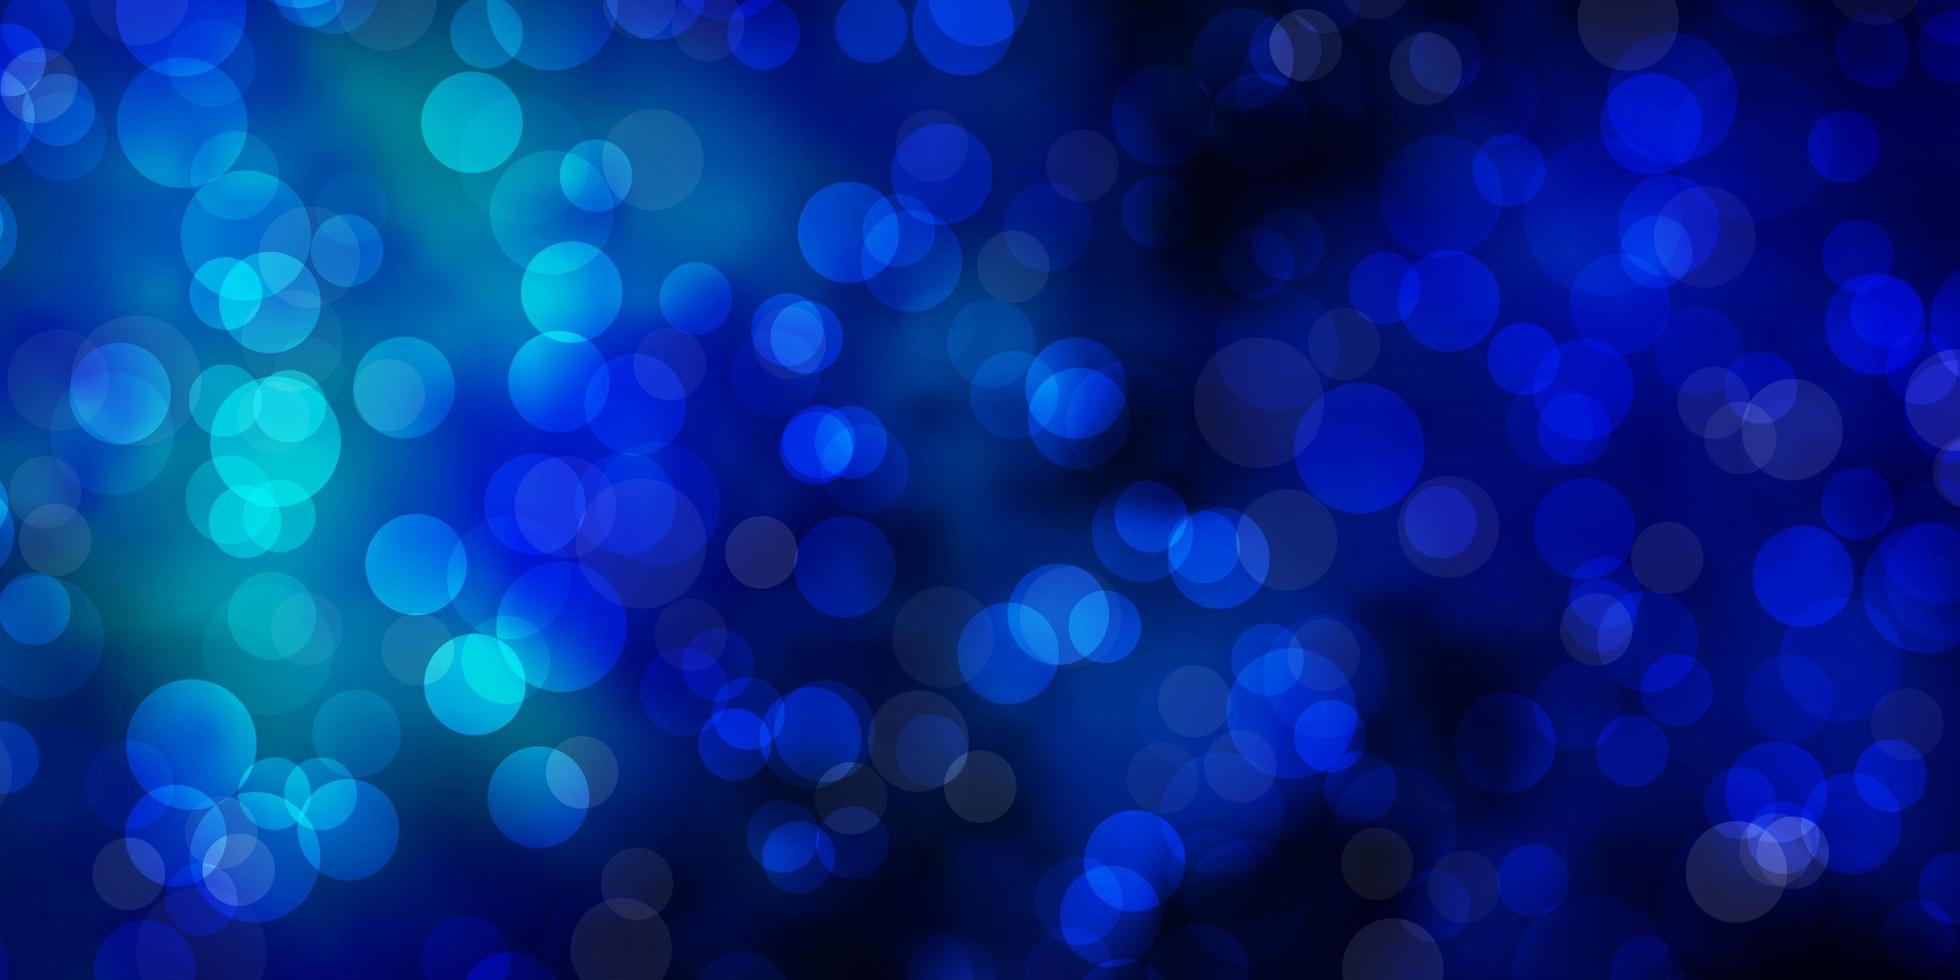 Blue background with spots. vector